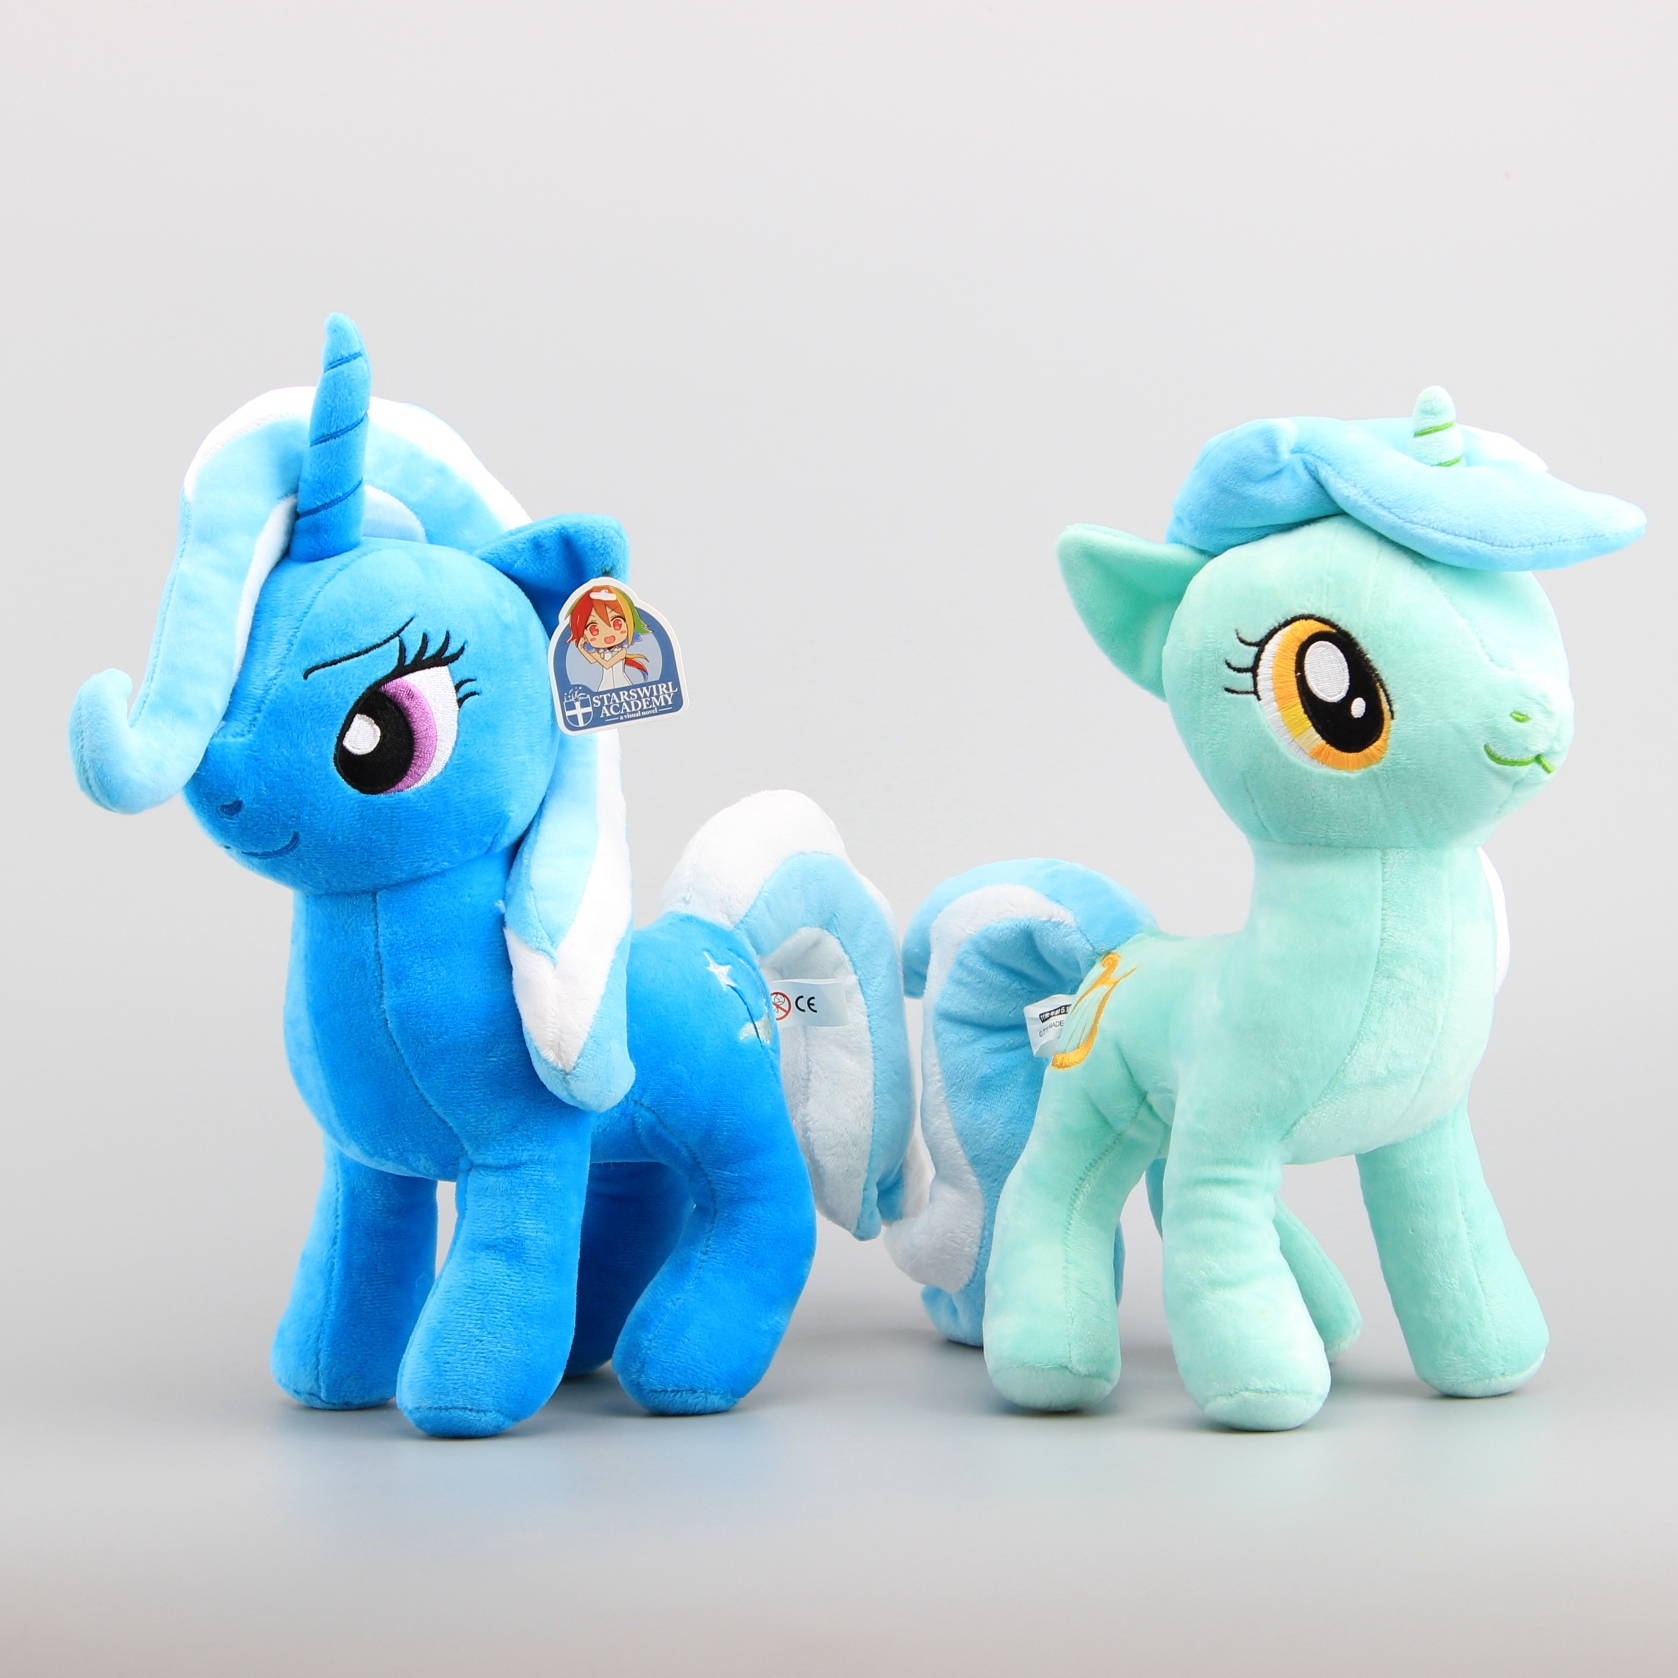 trixiemodel!!! @@@ 1 NEW Cute Horses Lyra Heartstrings Trixie Stuffed Animals Plush Toy 30-33 CM  Girls Birthday